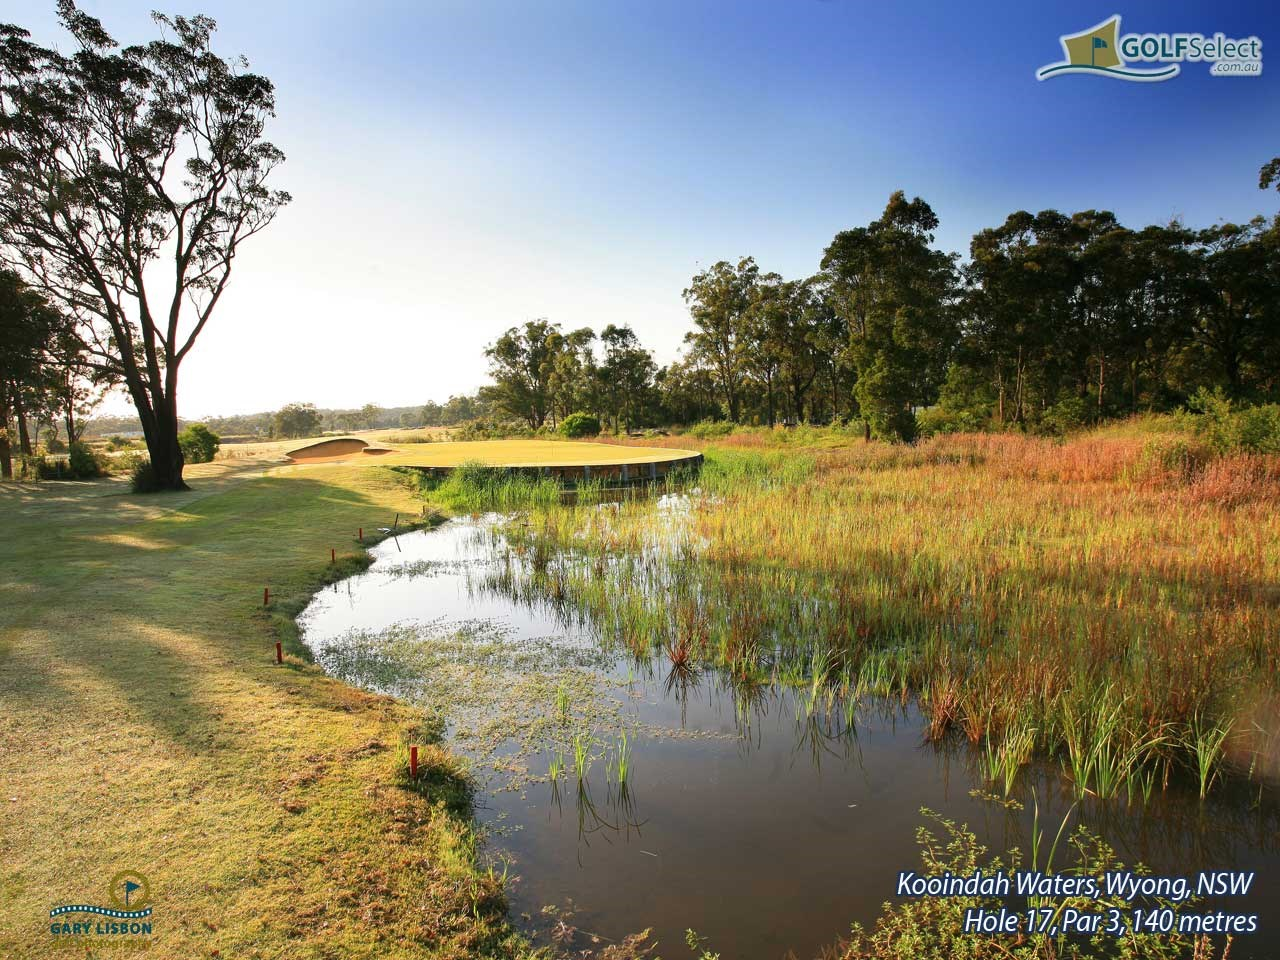 Kooindah Waters Hole 17, Par 3, 140 metres